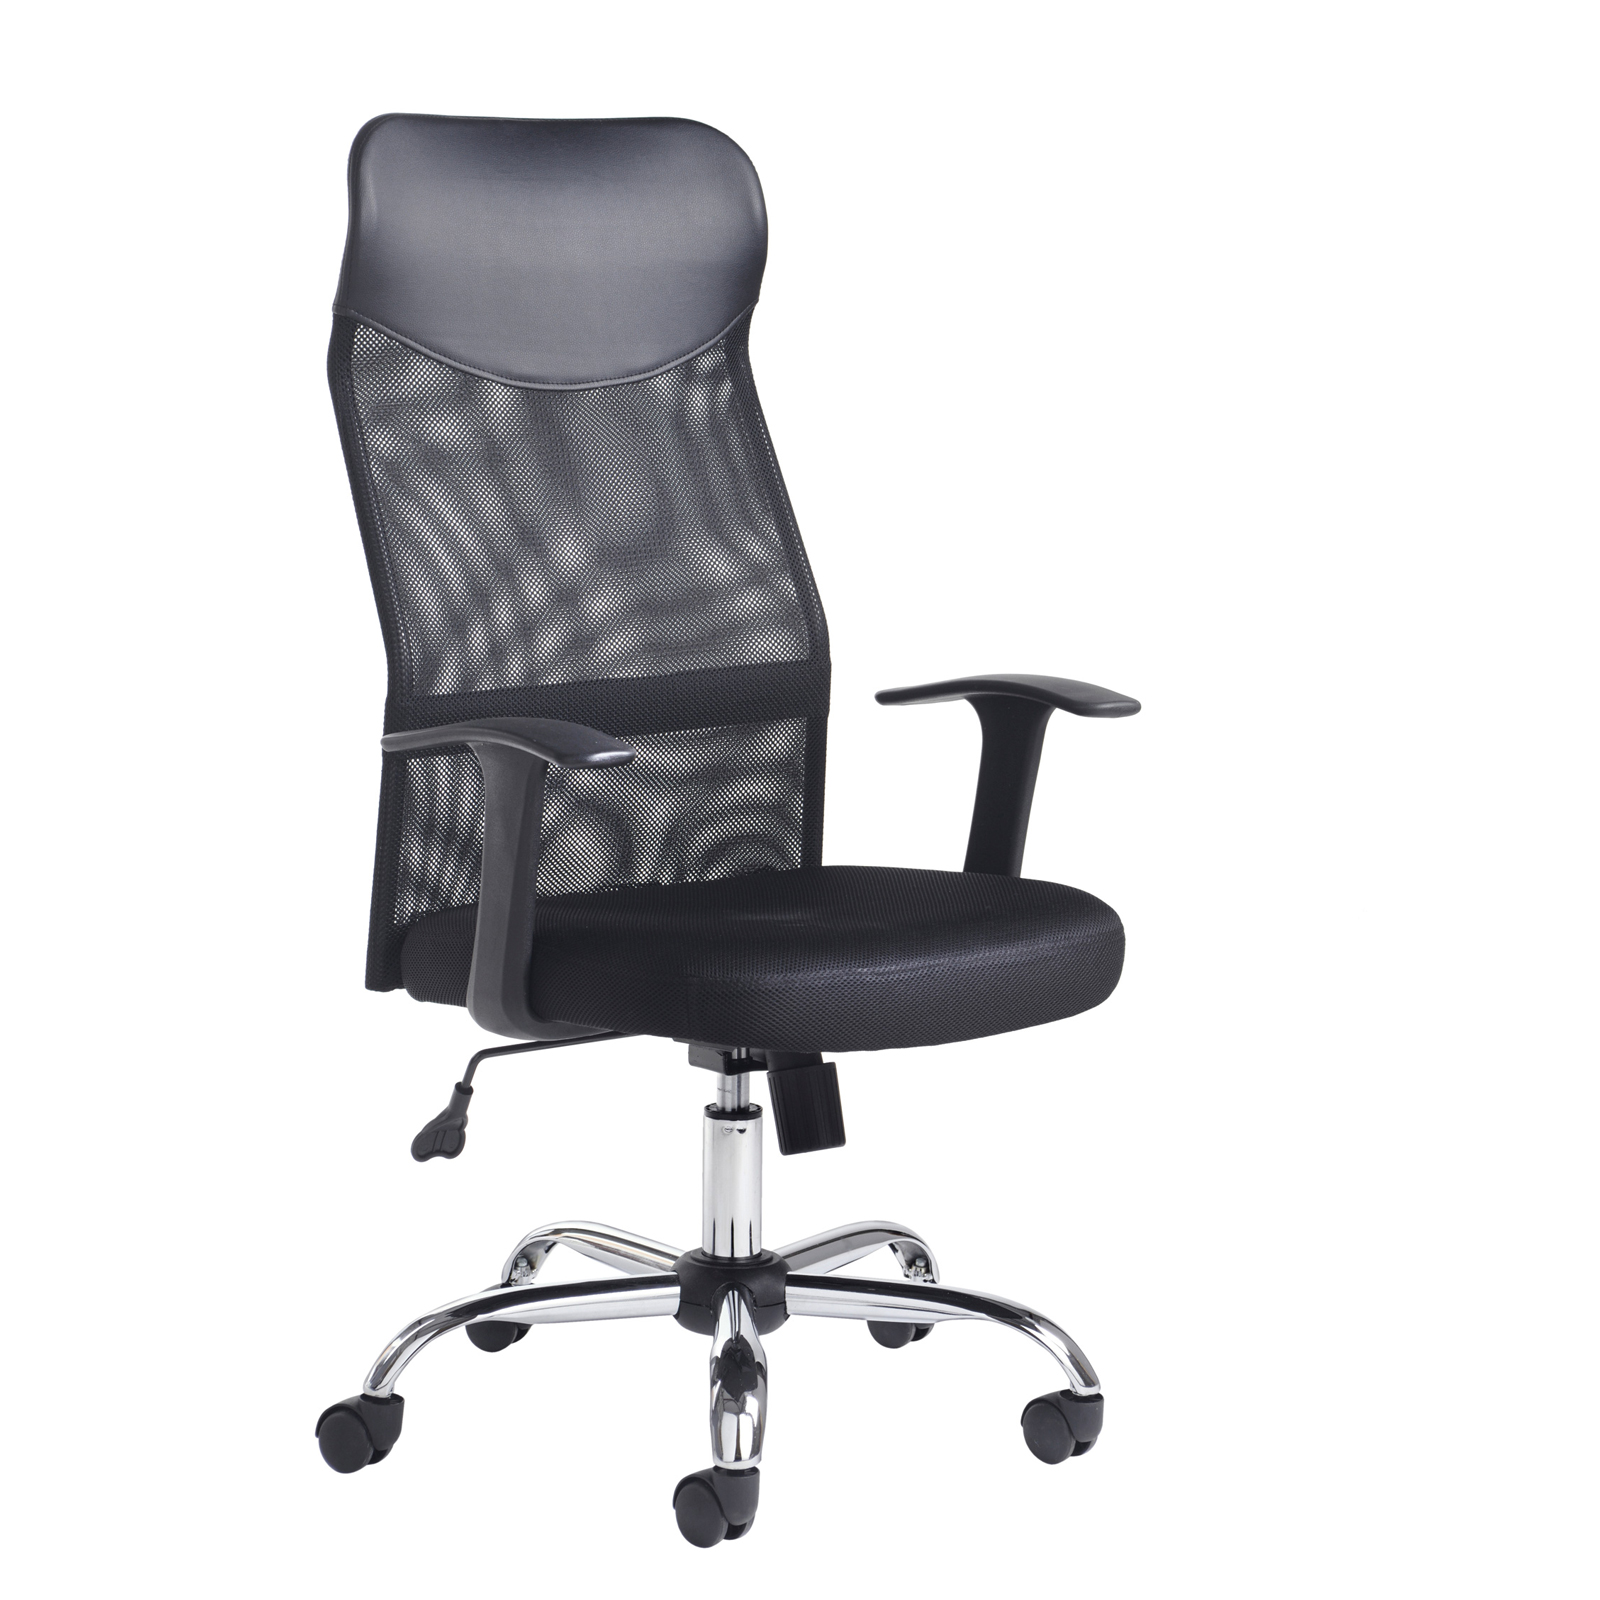 Desk Chairs Aurora high back mesh operators chair - black